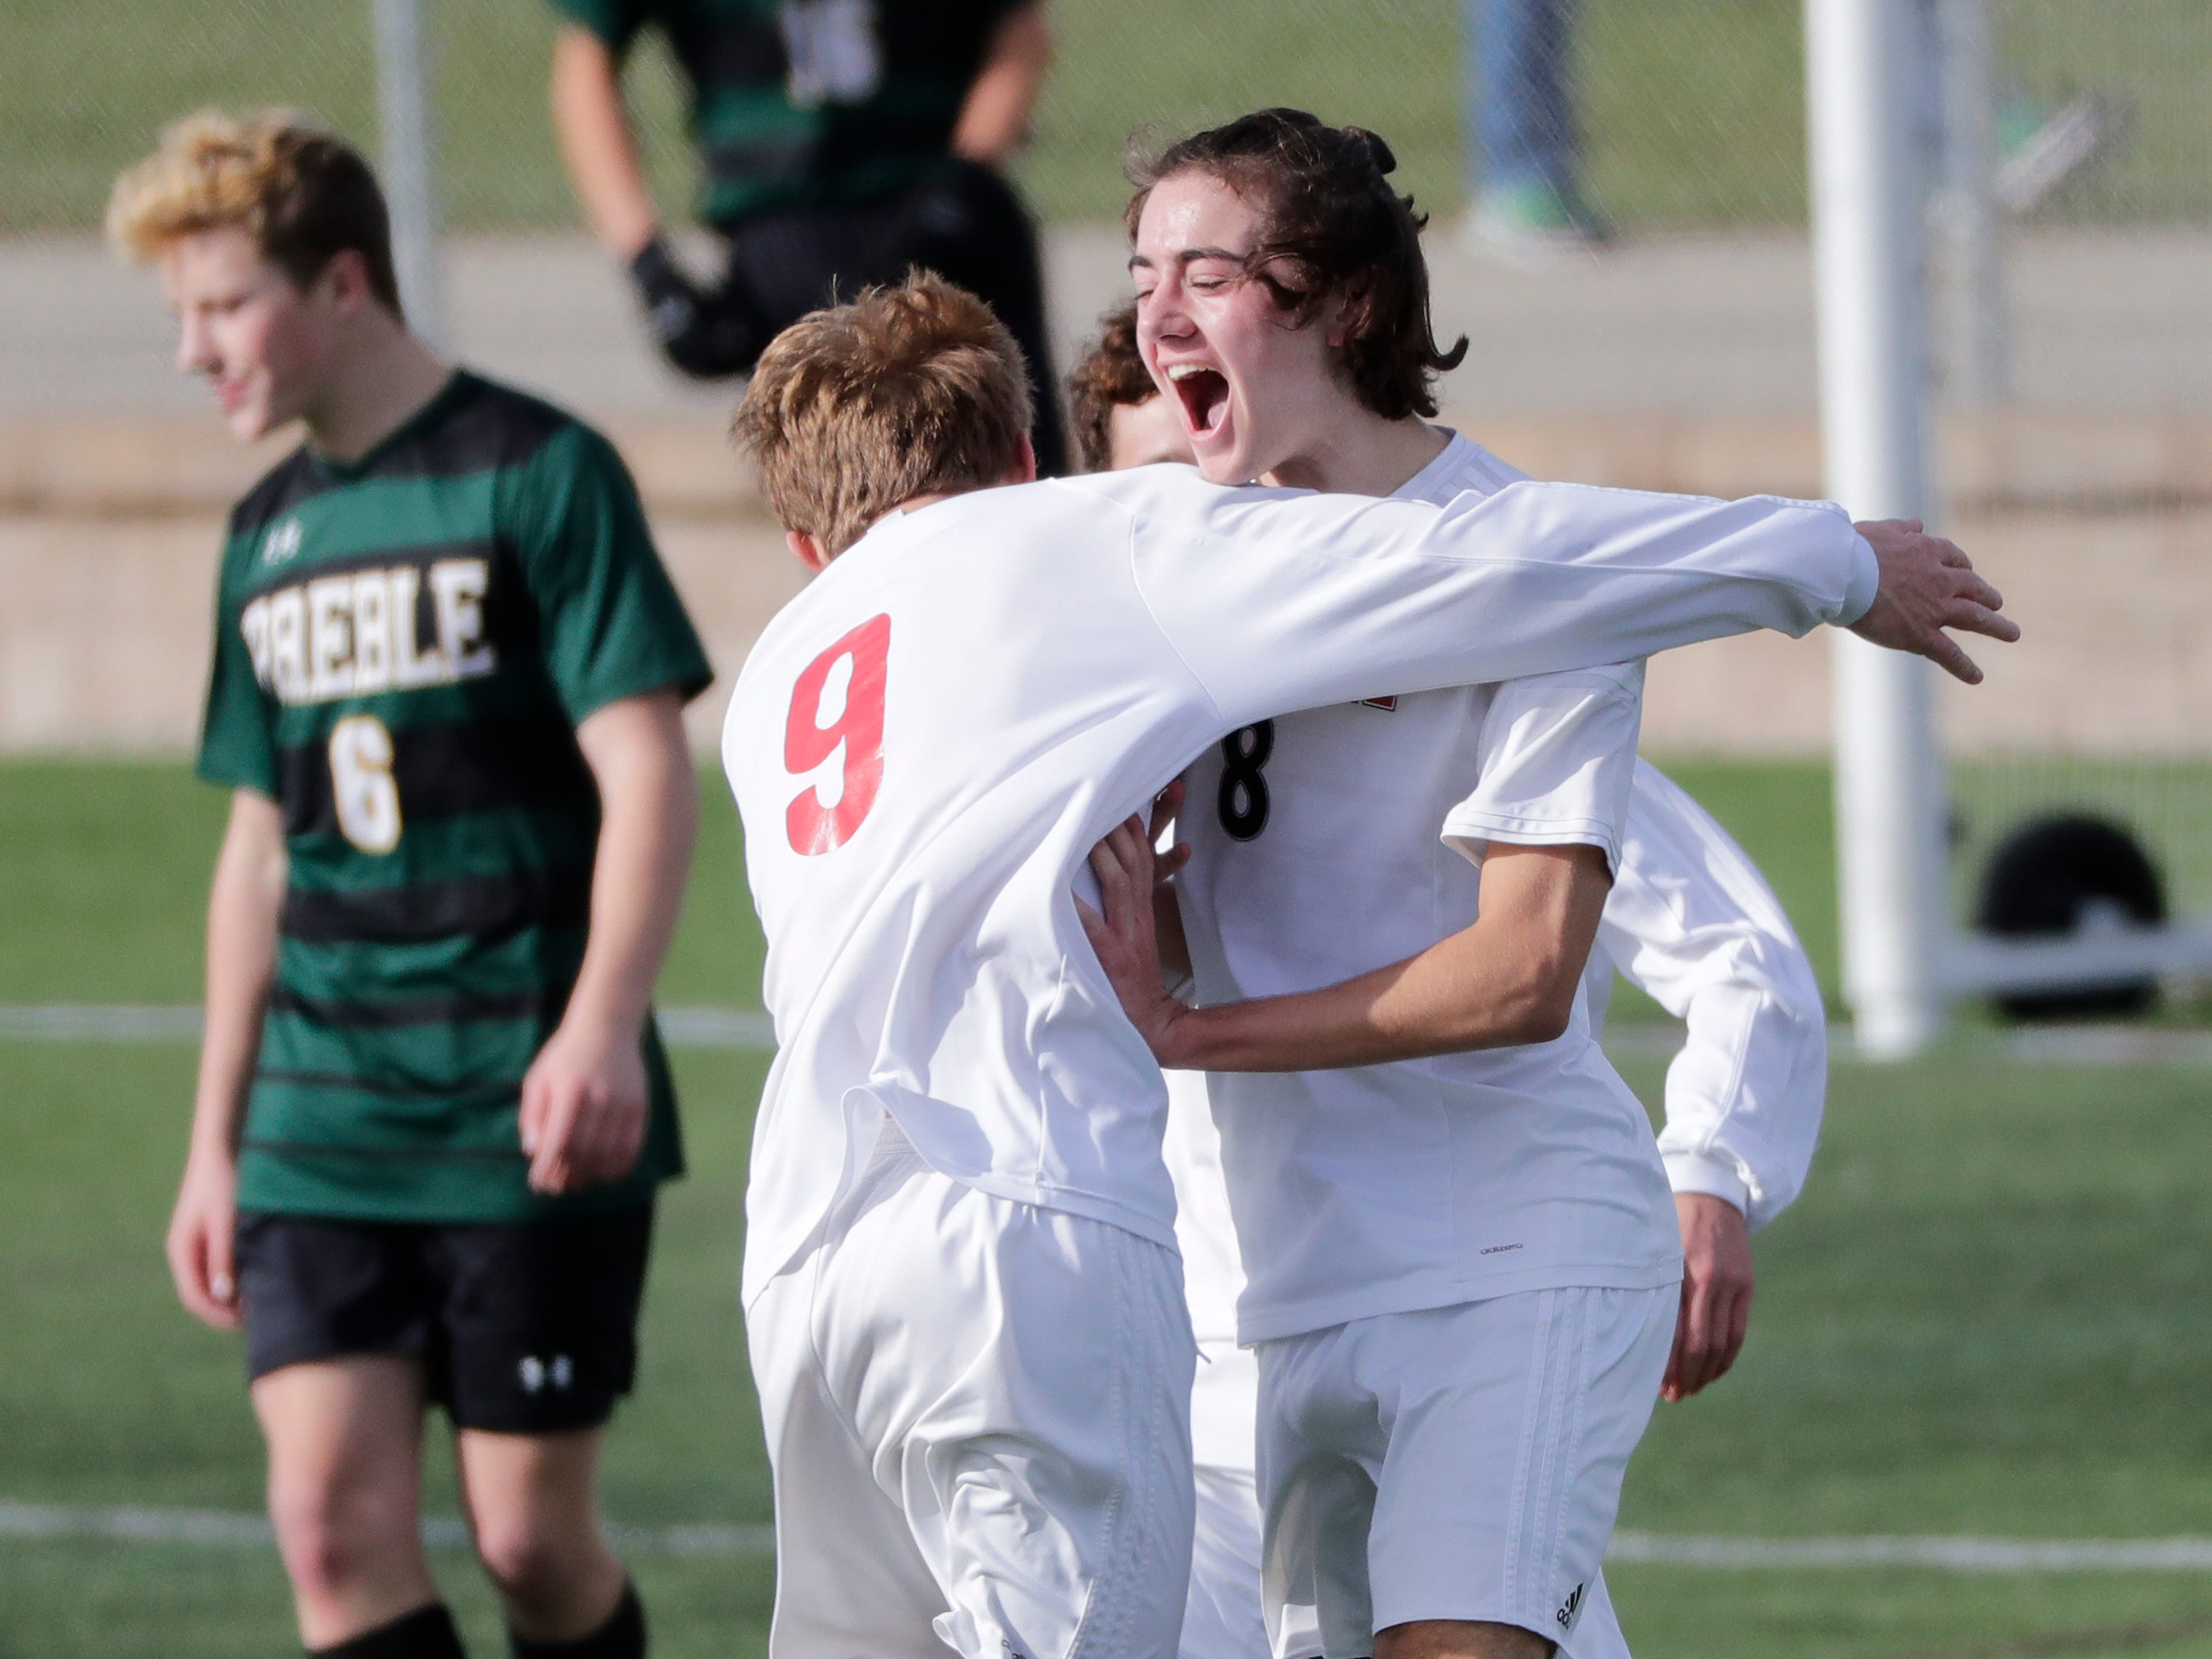 Hamilton High School's Matt Polzer (9) congratulates Zach Wilcox (8) after he scored a goal against Green Bay Preble High School's goalie Noah Conard during their WIAA Division 1 state semifinal boys soccer game Friday, November 2, 2018, at Uihlein Soccer Park in Milwaukee, Wis.